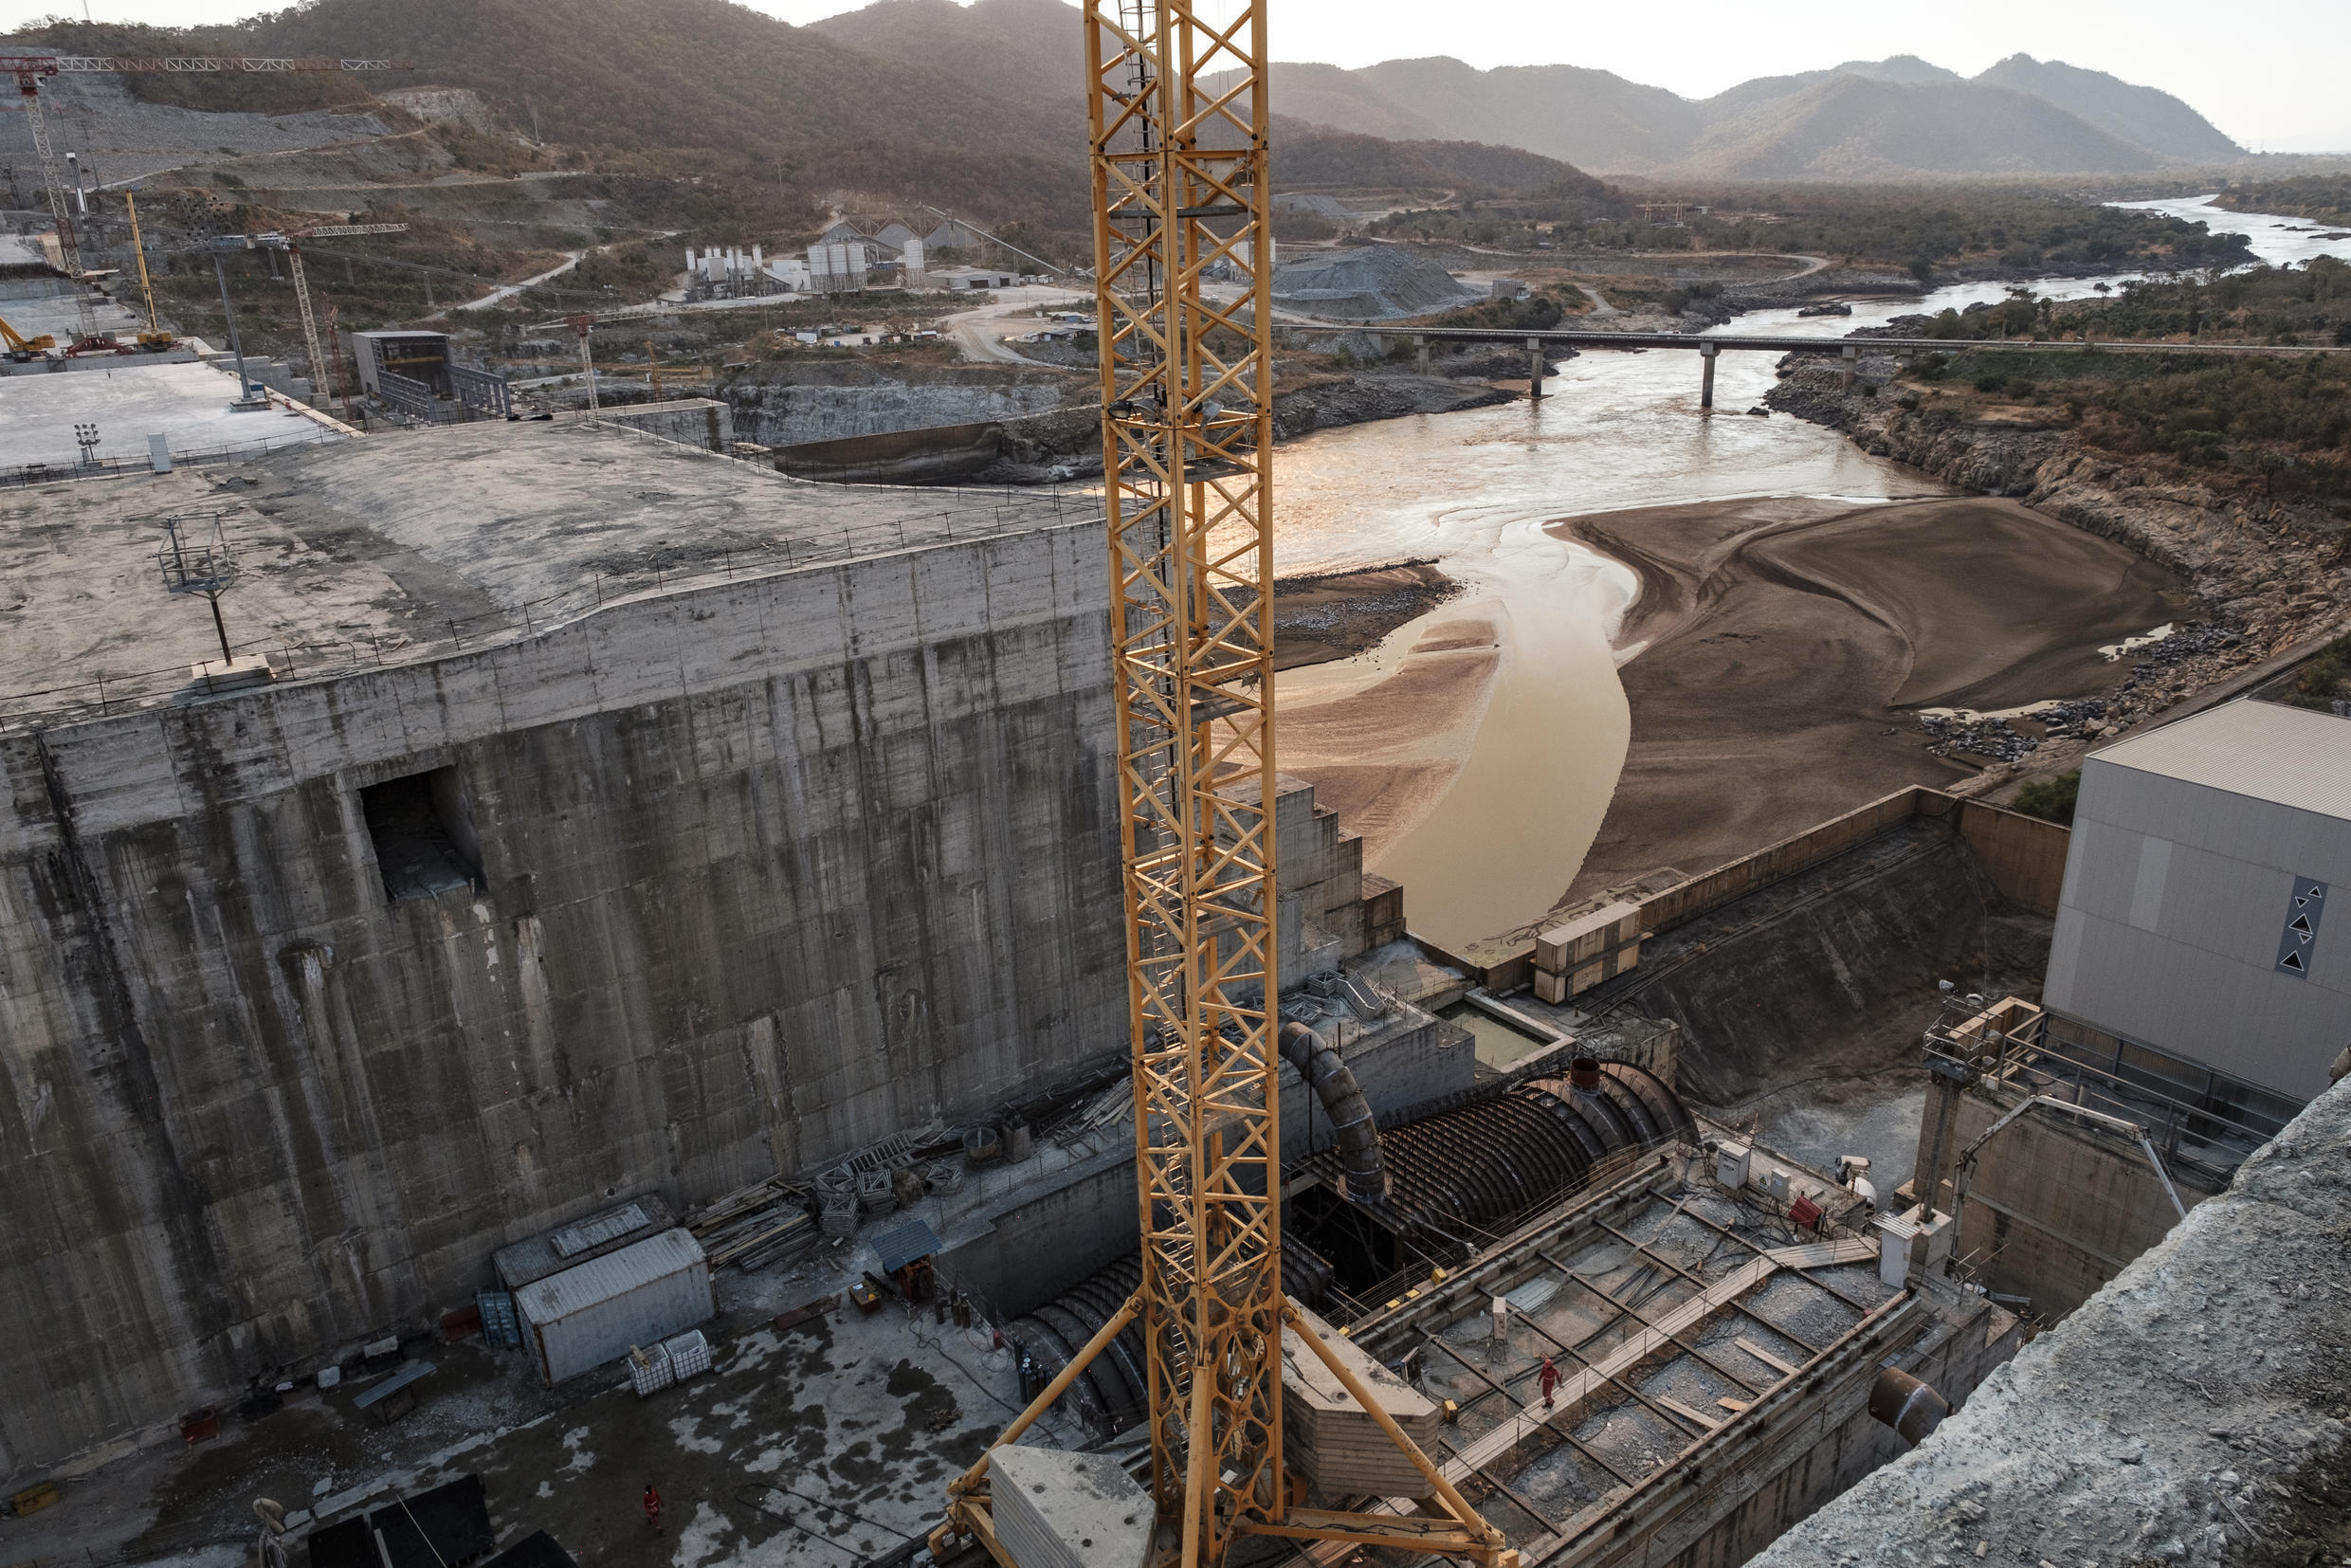 Cairo, Addis Ababa and Khartoum have failed to produce a deal, despite years of talks, over the filling of the Ethiopian dam